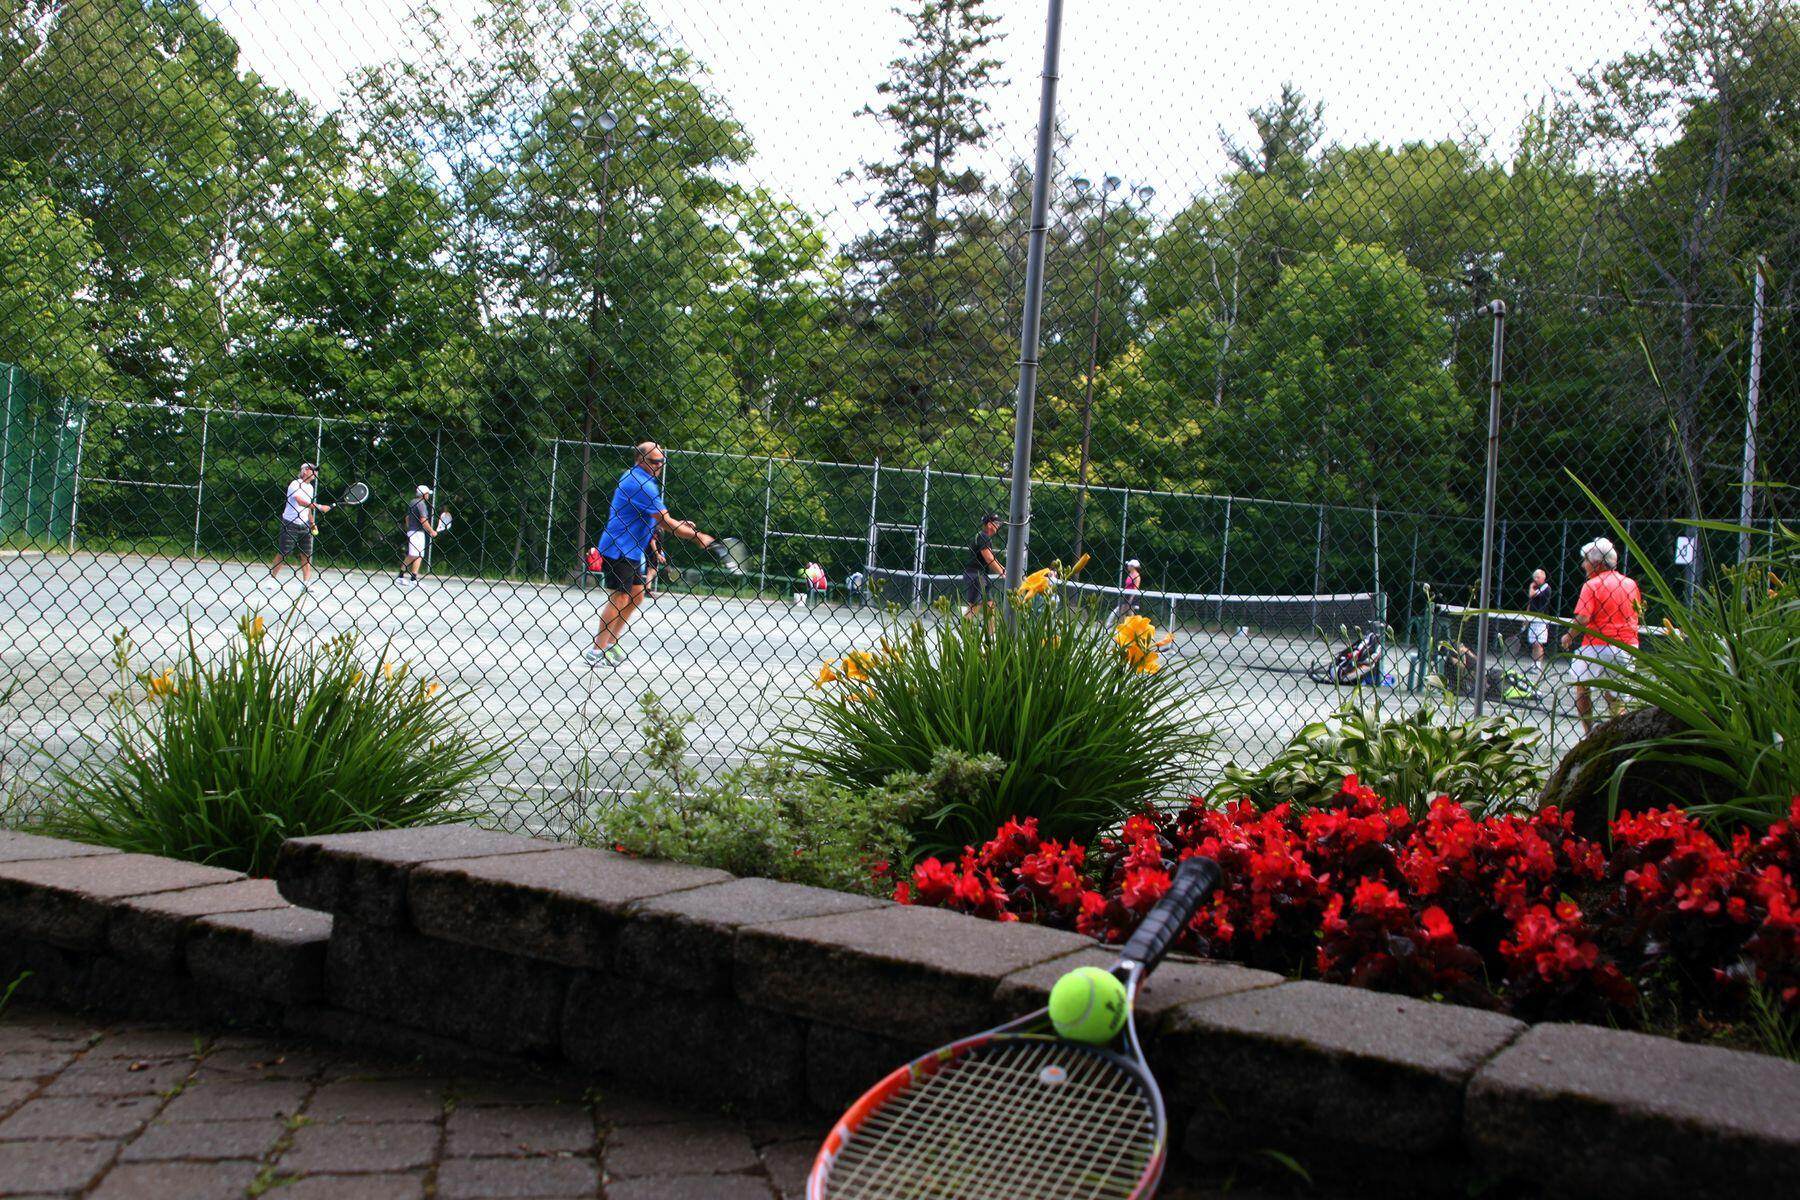 Foreground view of tennis racket with people playing in the back